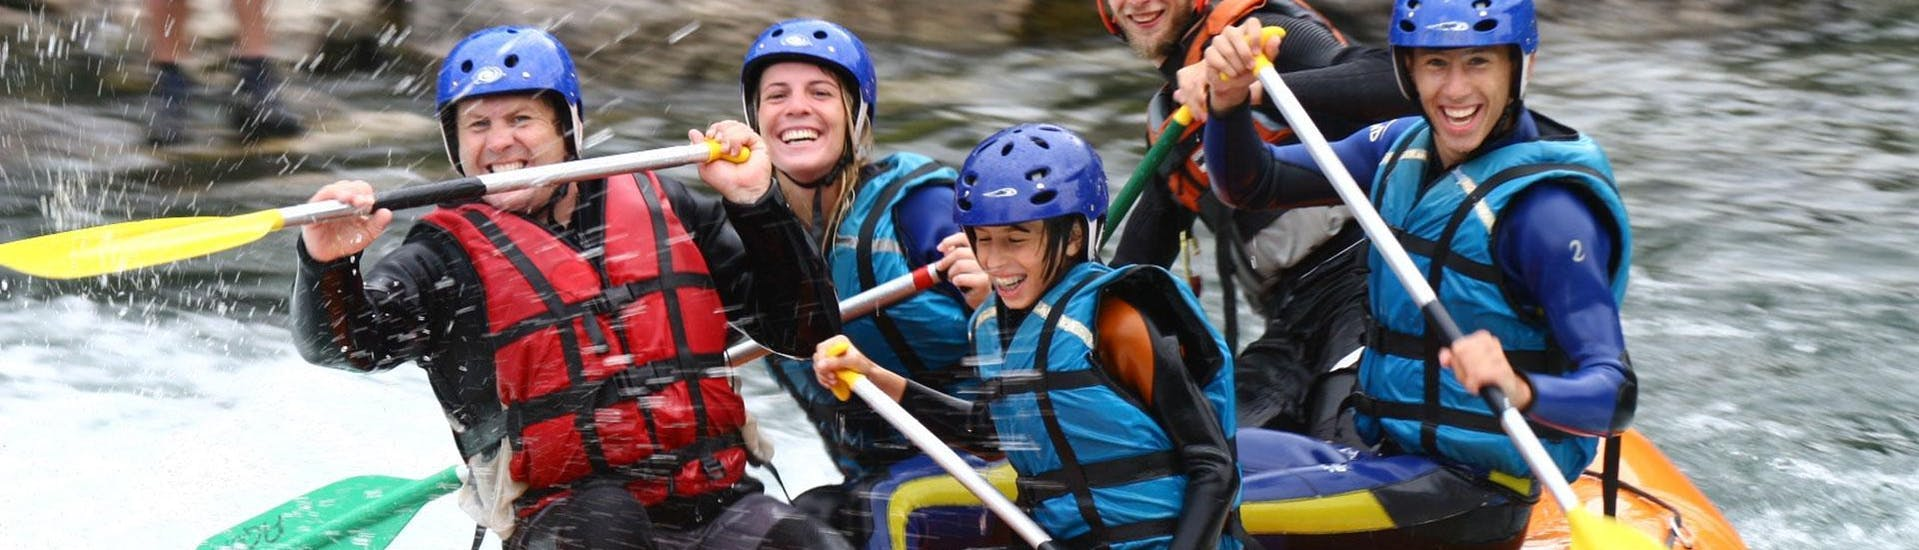 A group of friends are doing Rafting with Ohlala Eaux Vive.